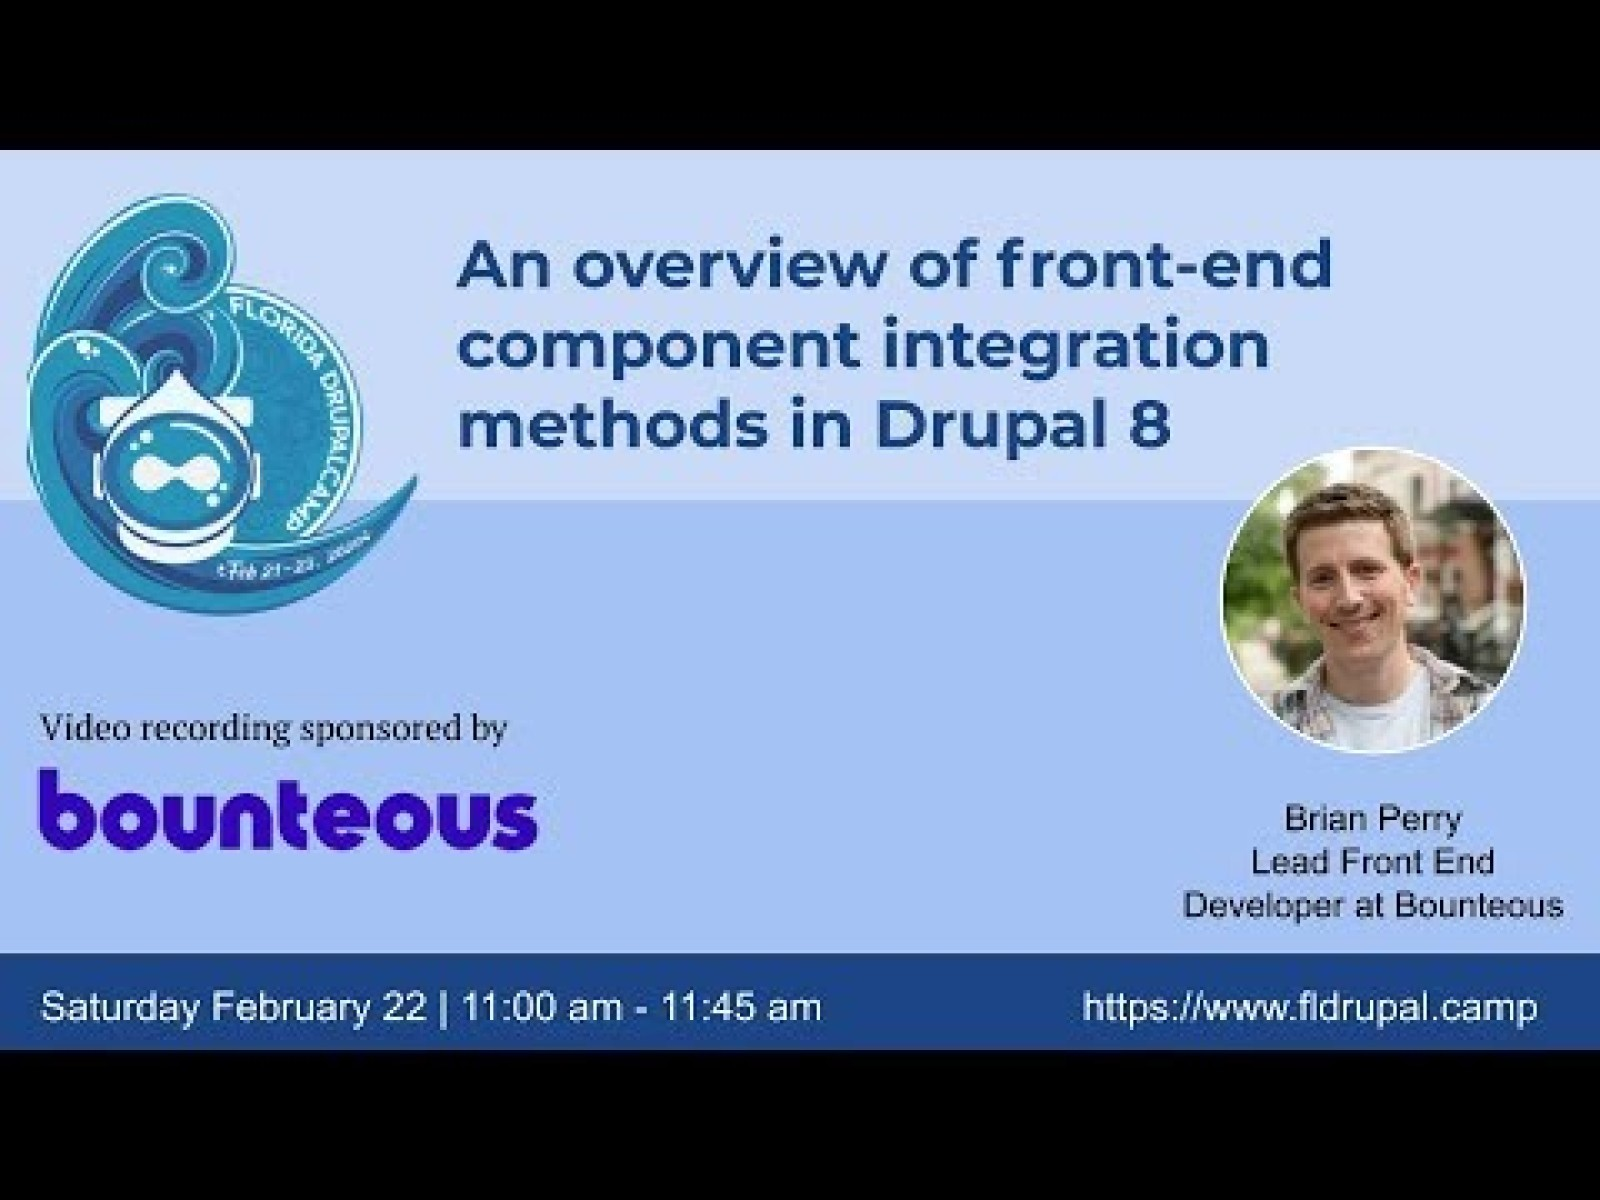 An overview of Drupal 8 front-end component integration methods